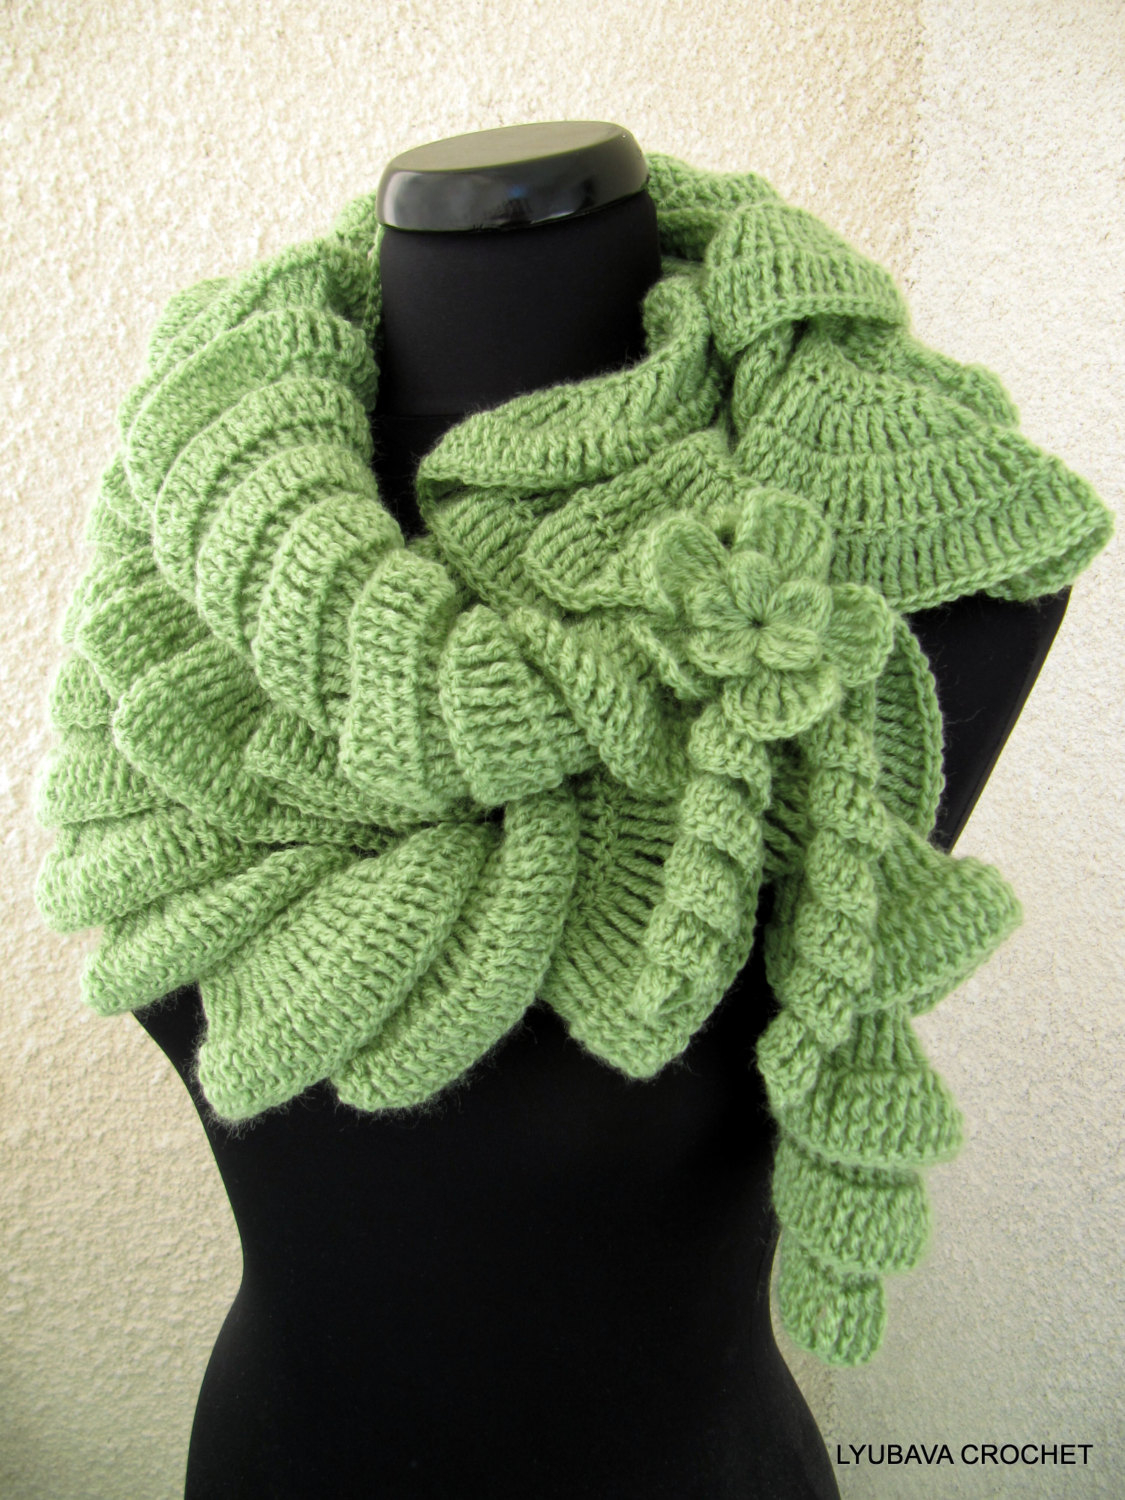 How To Knit A Ruffle Scarf Free Pattern 9 Crochet Patterns For Scarves Free Fiber Flux Free Crochet